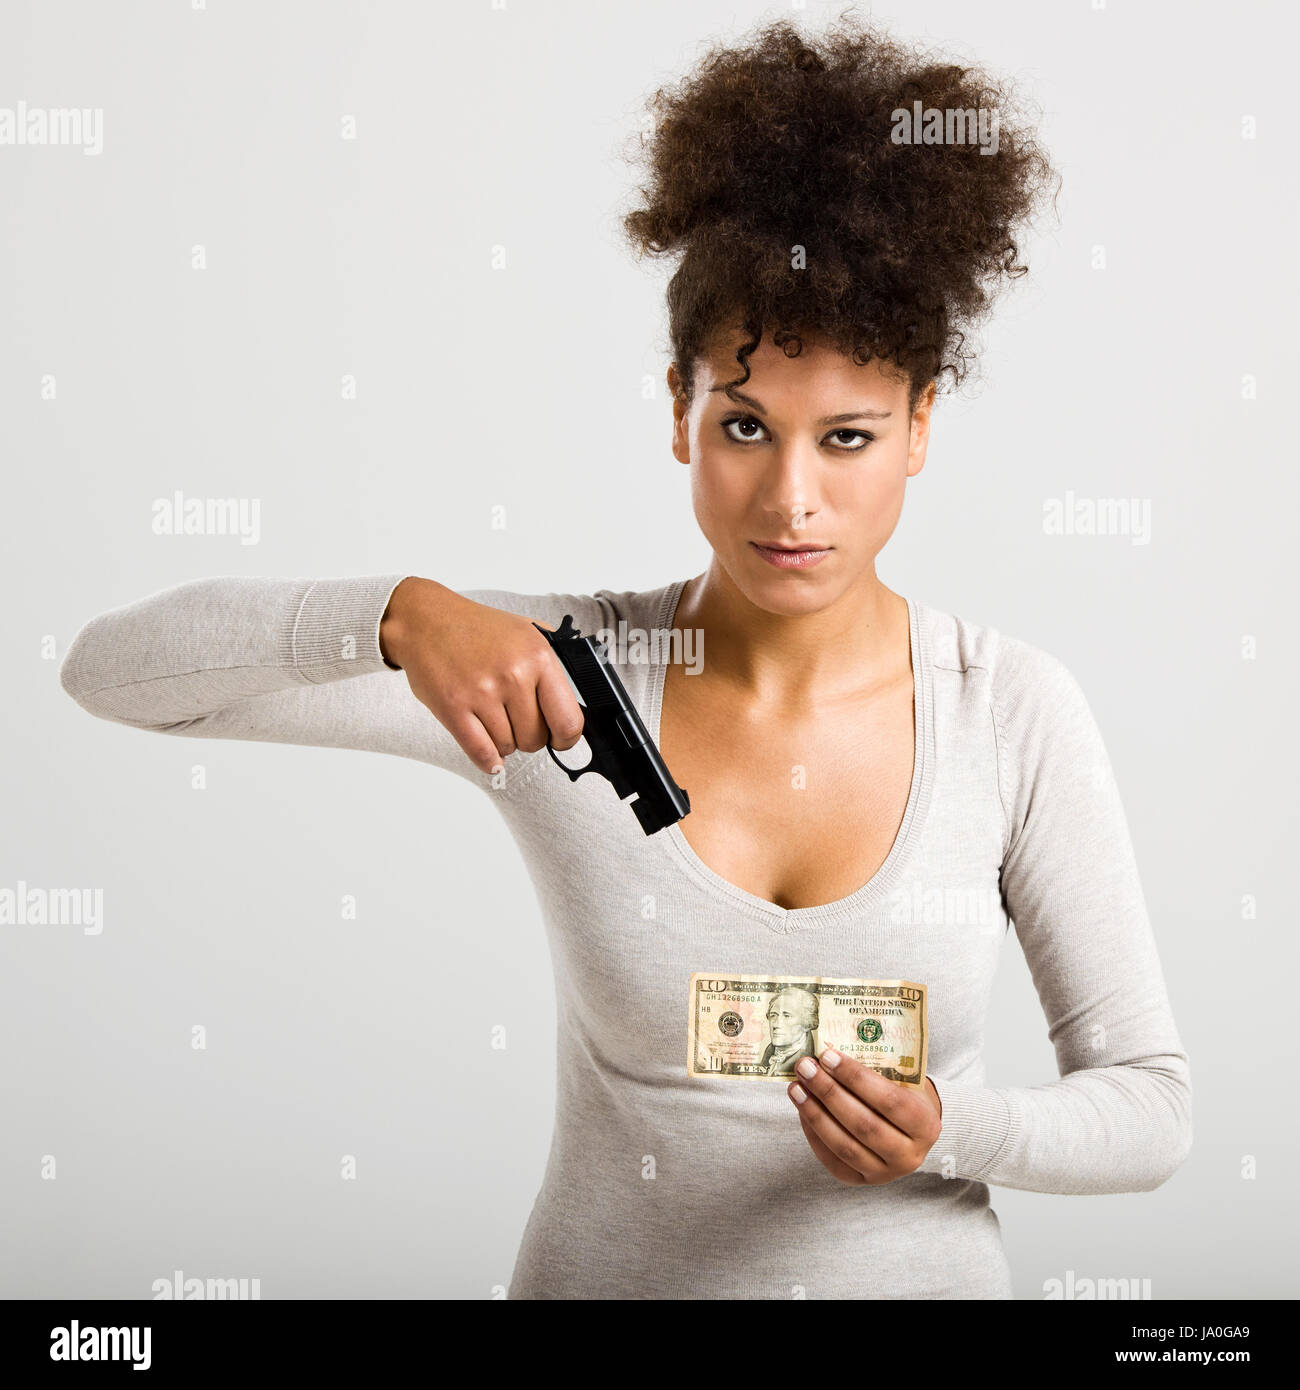 woman, black, swarthy, jetblack, deep black, bad, peccant, wickedly, evil, - Stock Image